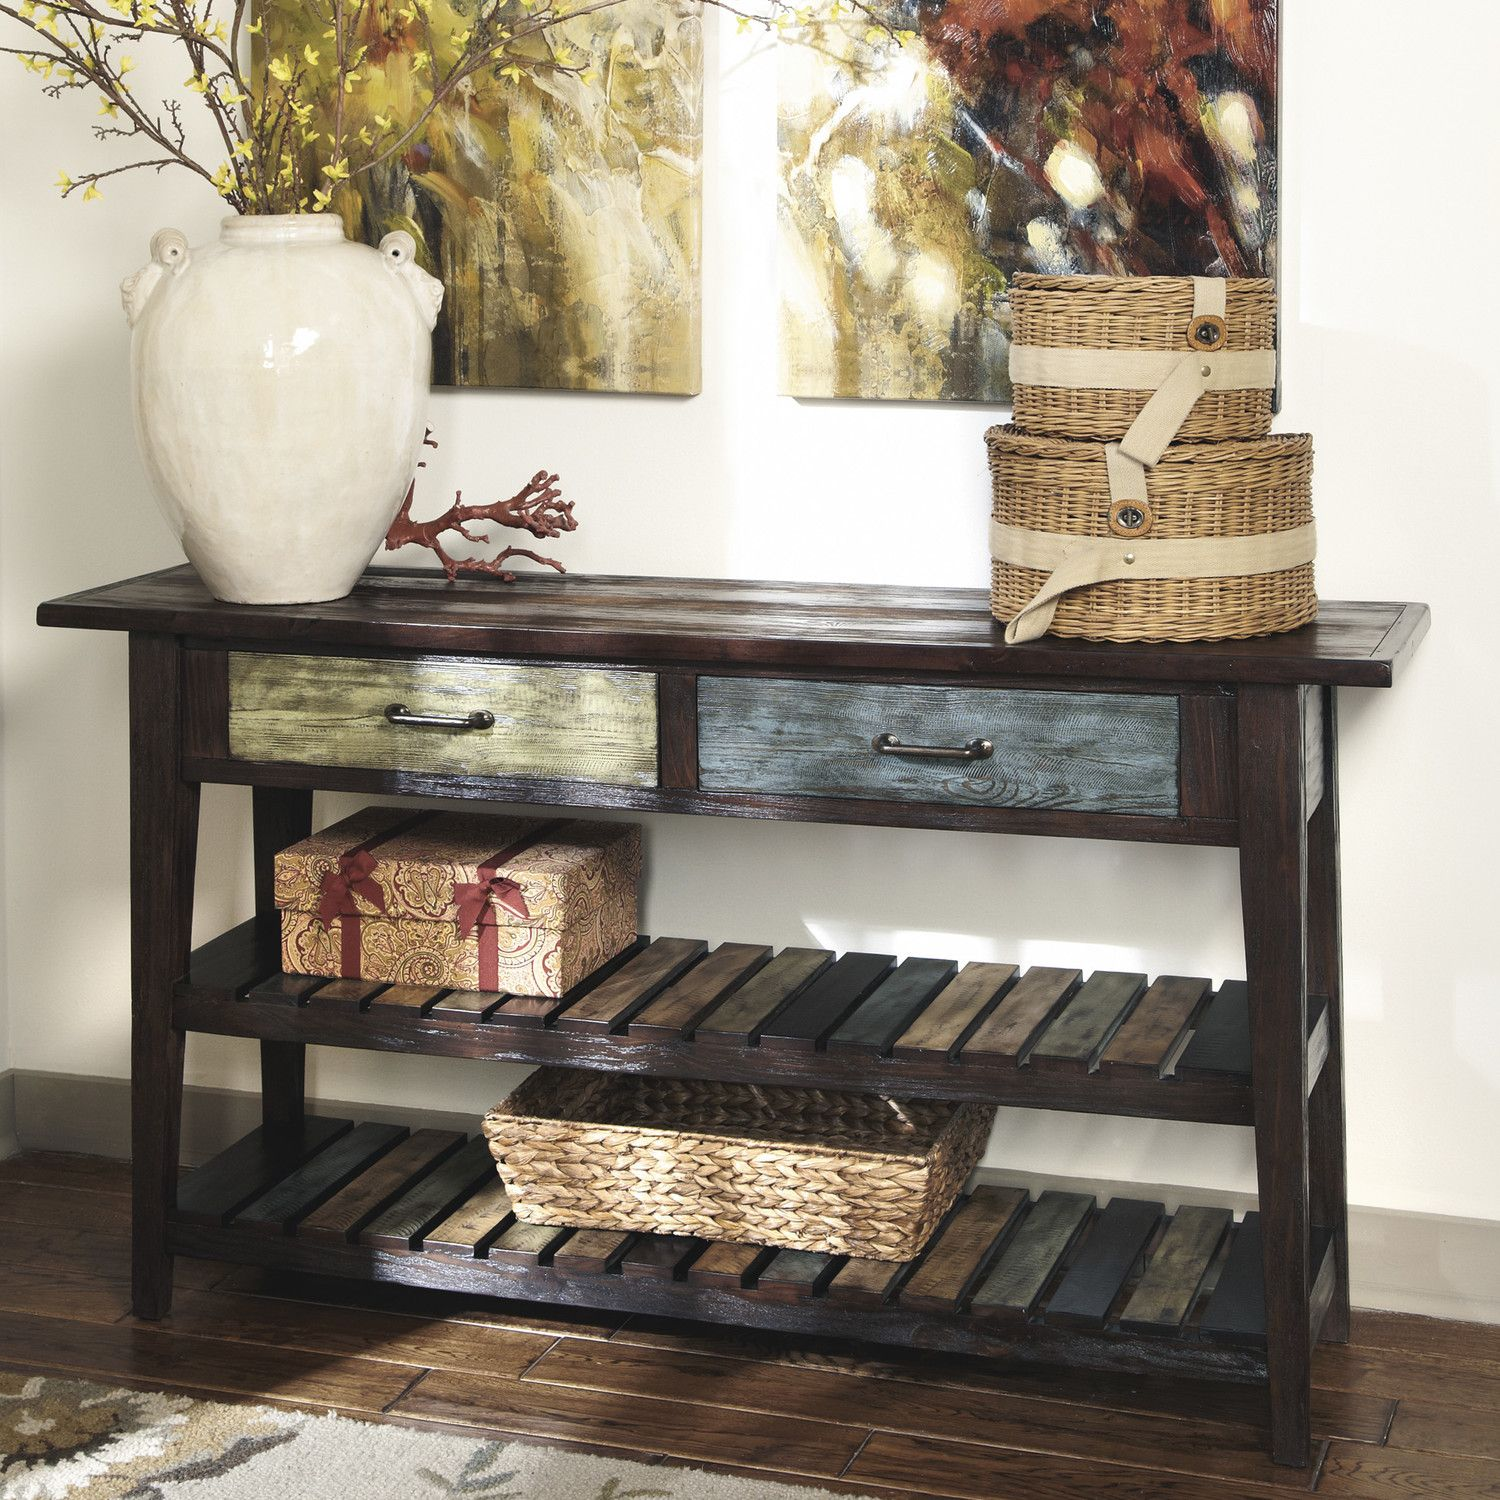 End of hallway storage ideas  Signature Design by Ashley Corey Console Table u Reviews  Wayfair